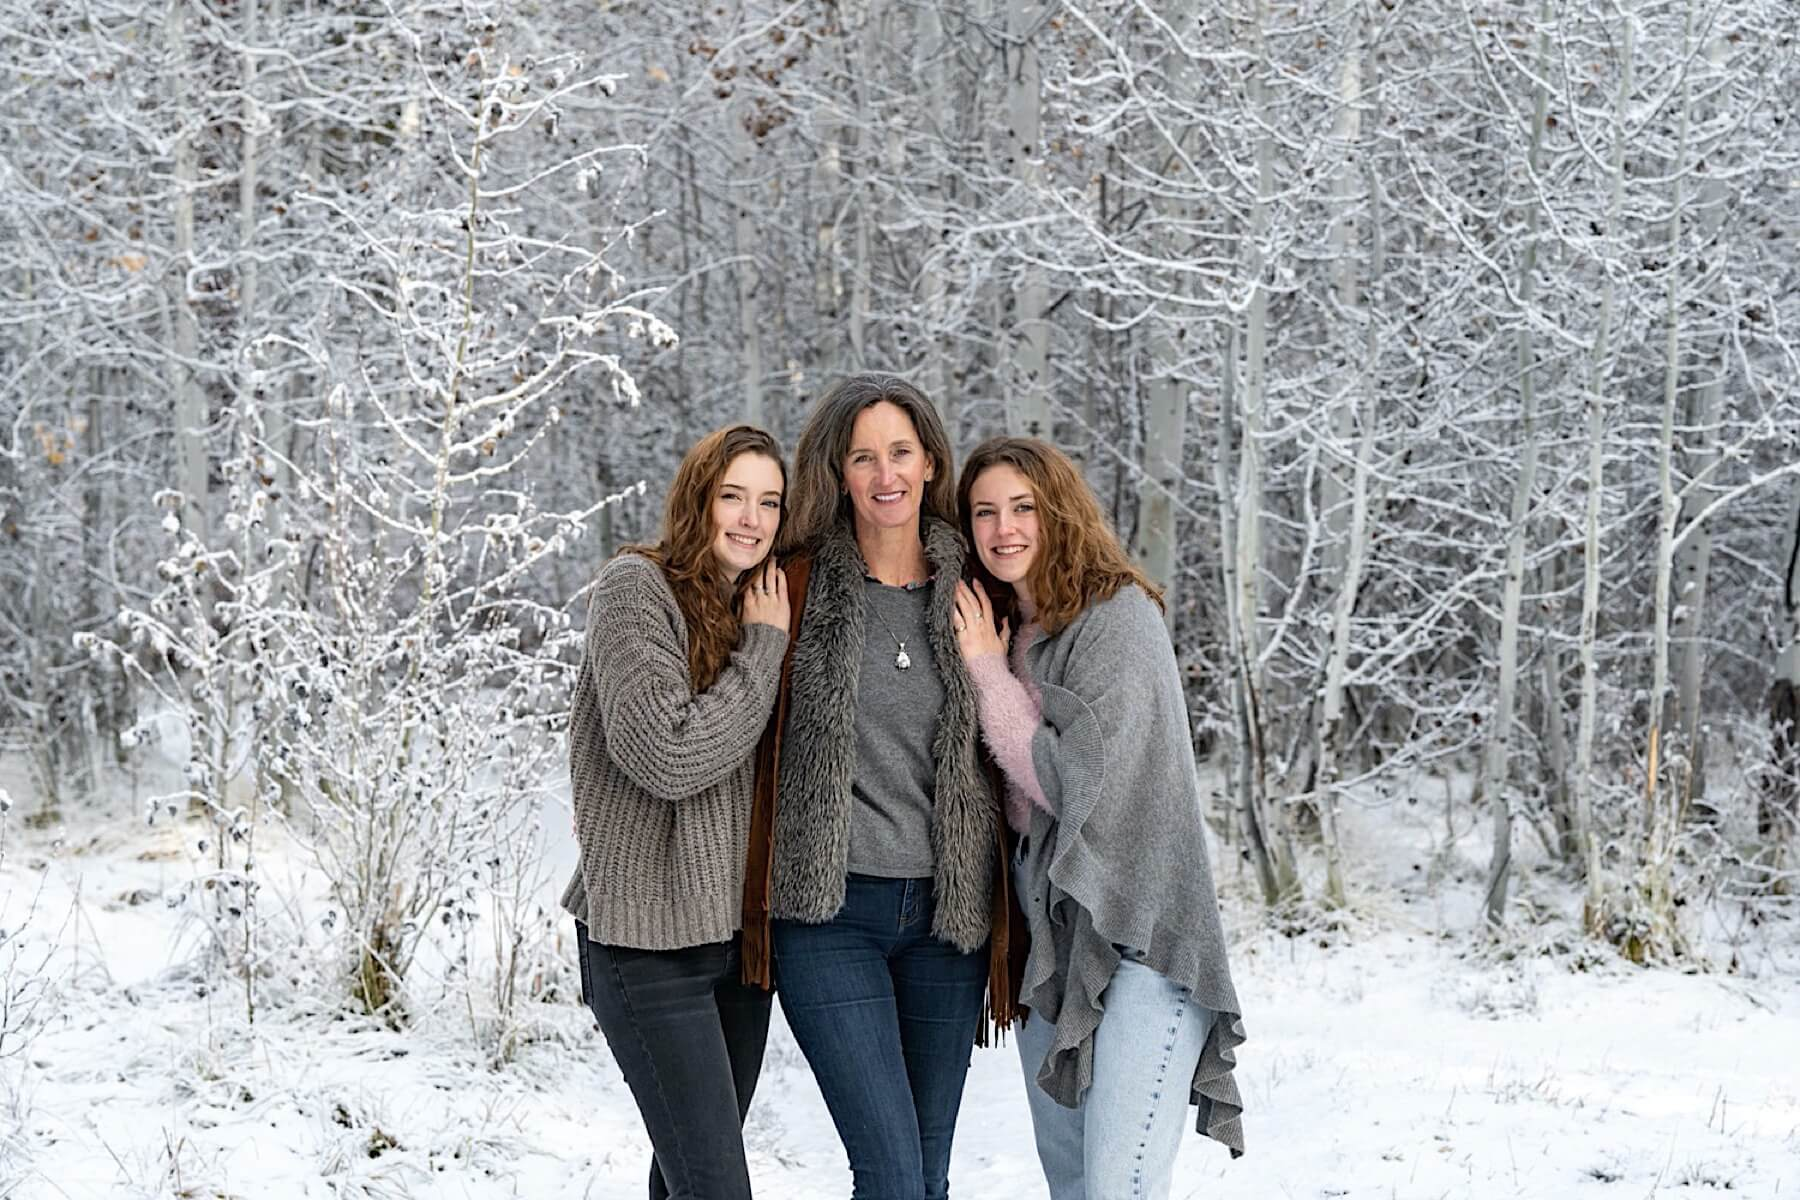 Daughter lean in and pose with mom. Background is white, frosty, snow covered aspen trees.